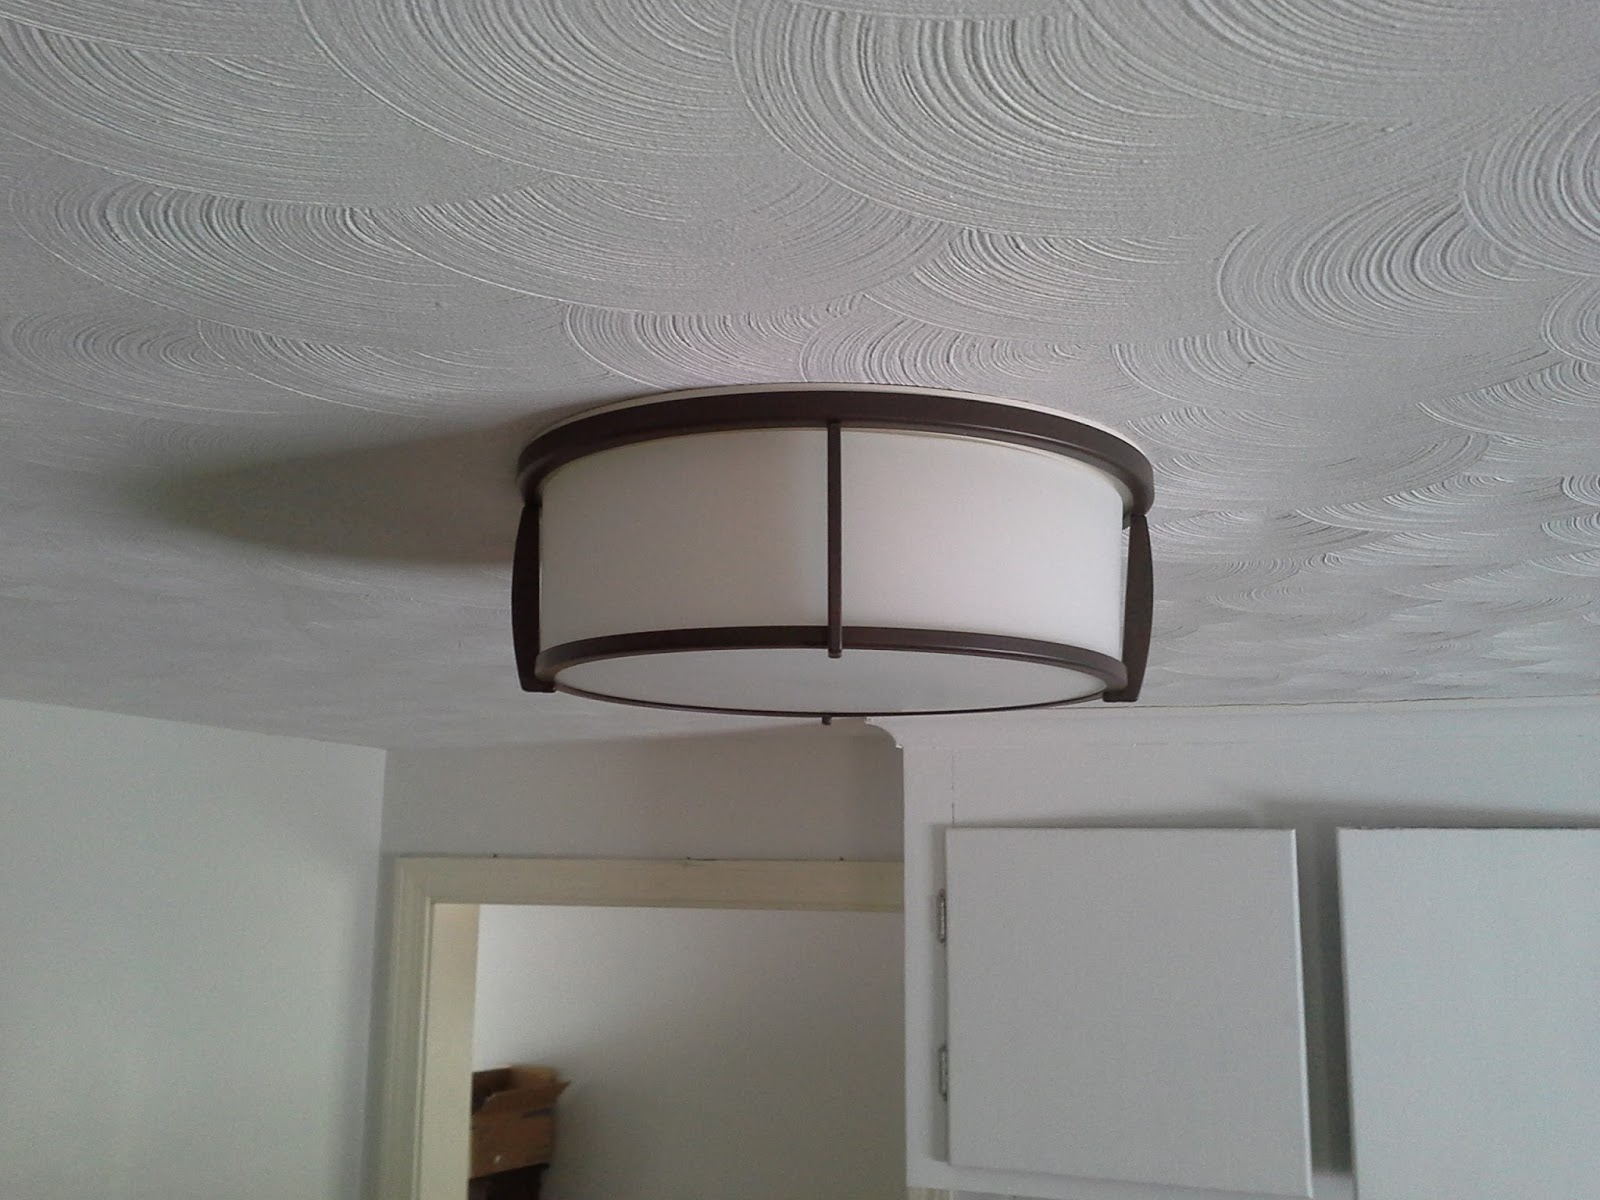 Lillys home designs lightening up the kitchen allen roth oil rubbed bronze flush mount light fixture lowes arubaitofo Choice Image